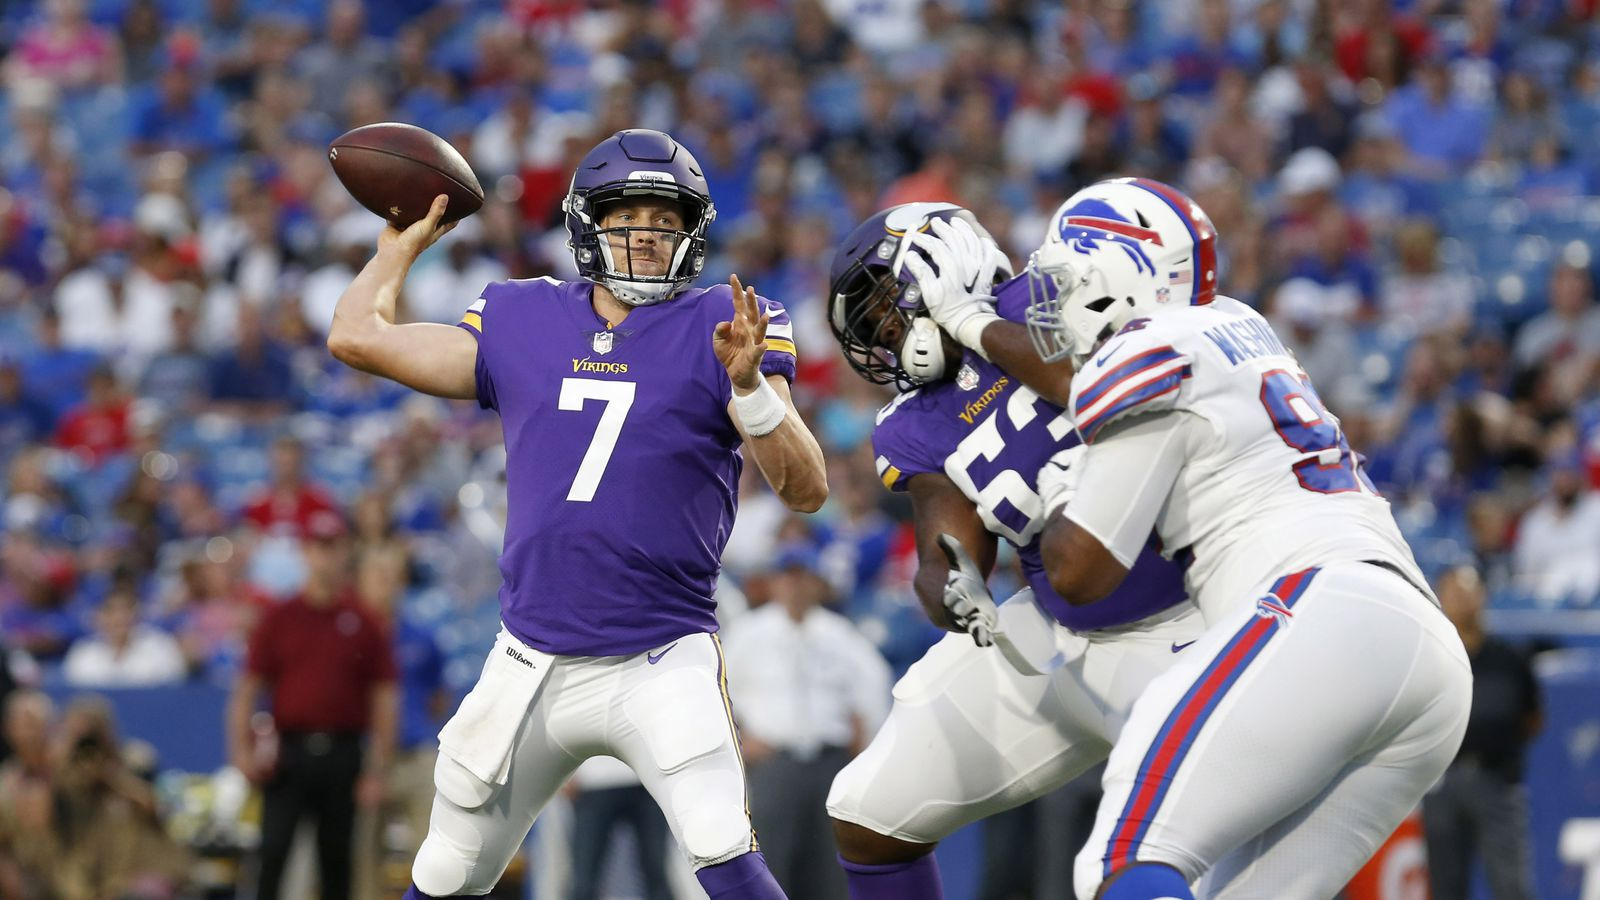 usa today 10210211.0 - Nfl Scores Standings Schedules And Updates Canoe